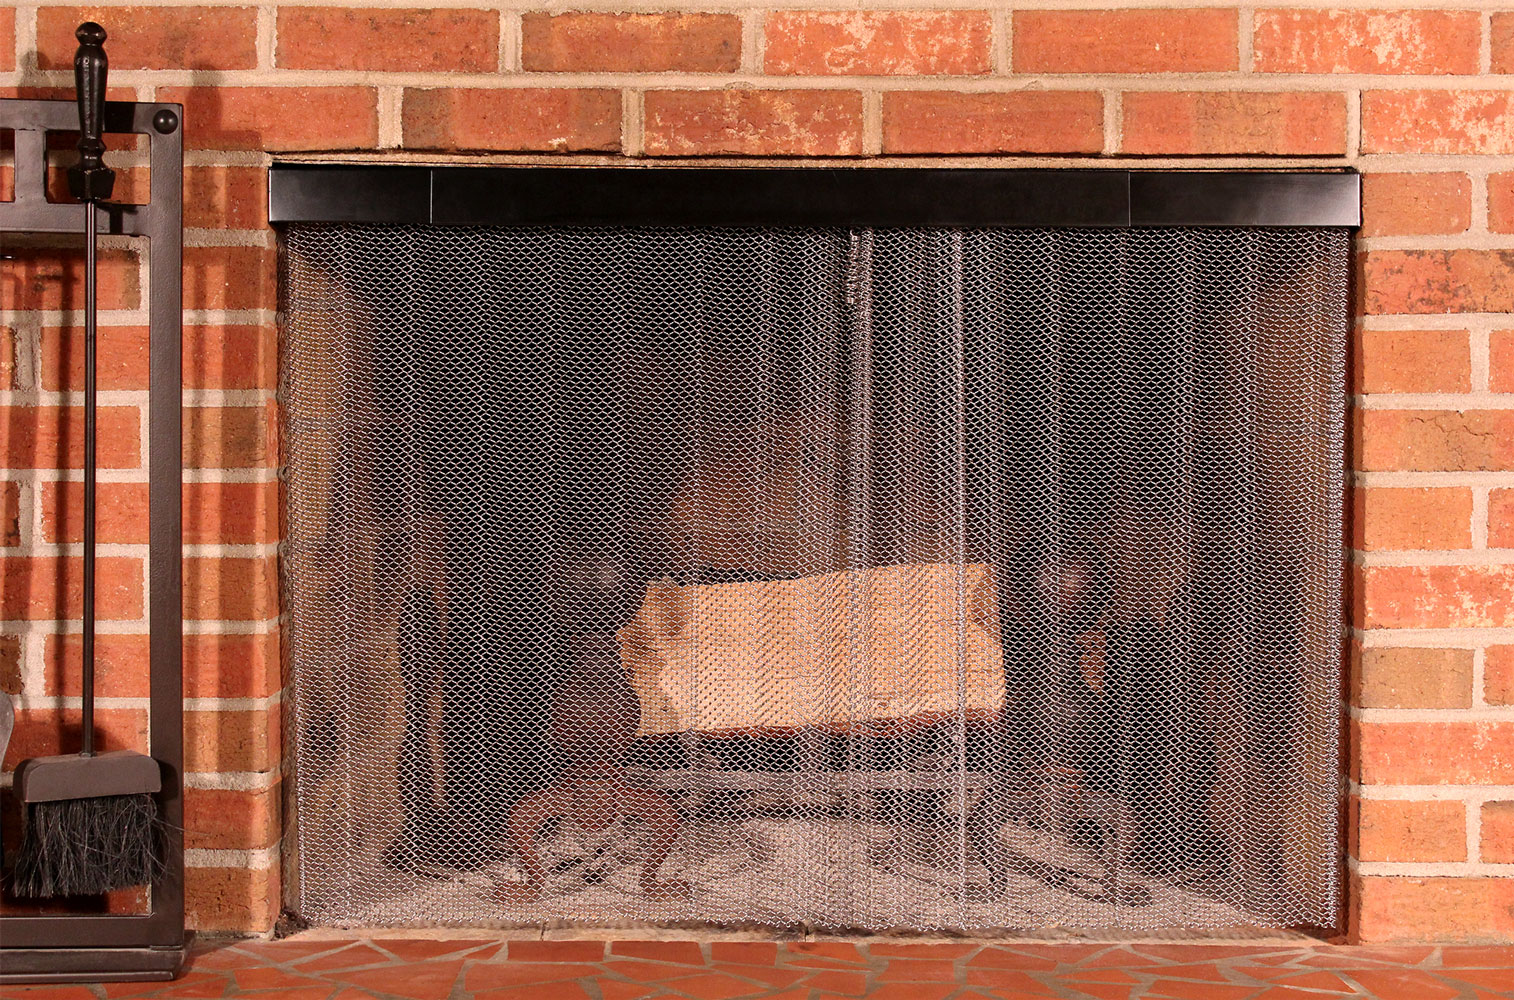 Hanging Fireplace Screens